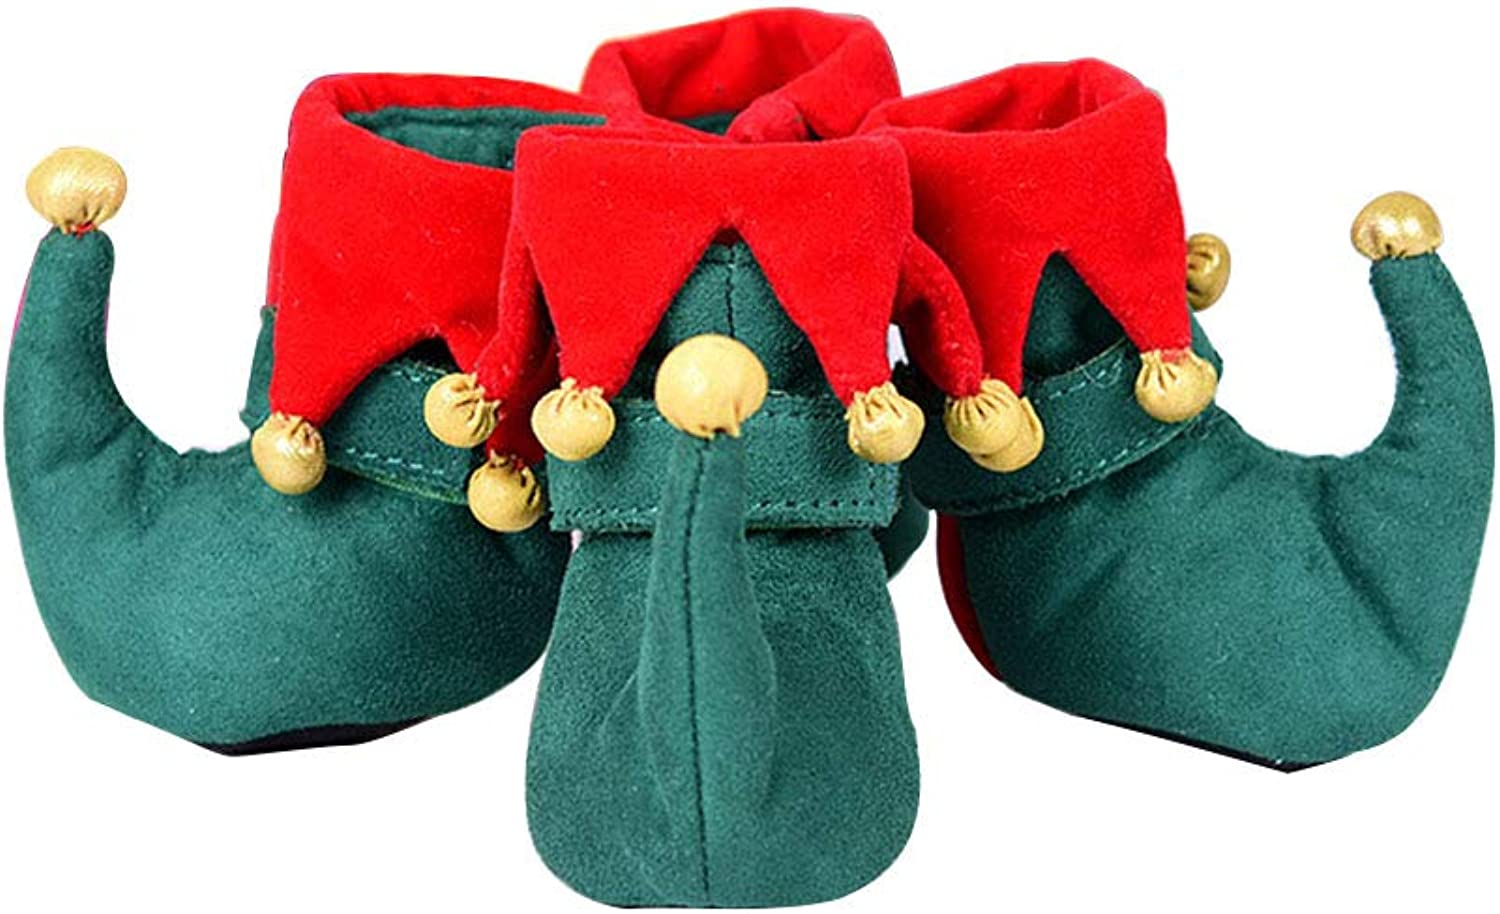 Christmas Dog Walking shoes Pet shoes Suede Puppy Boot Velcro Paw Predector Winter Warm Gift Set of 4,M